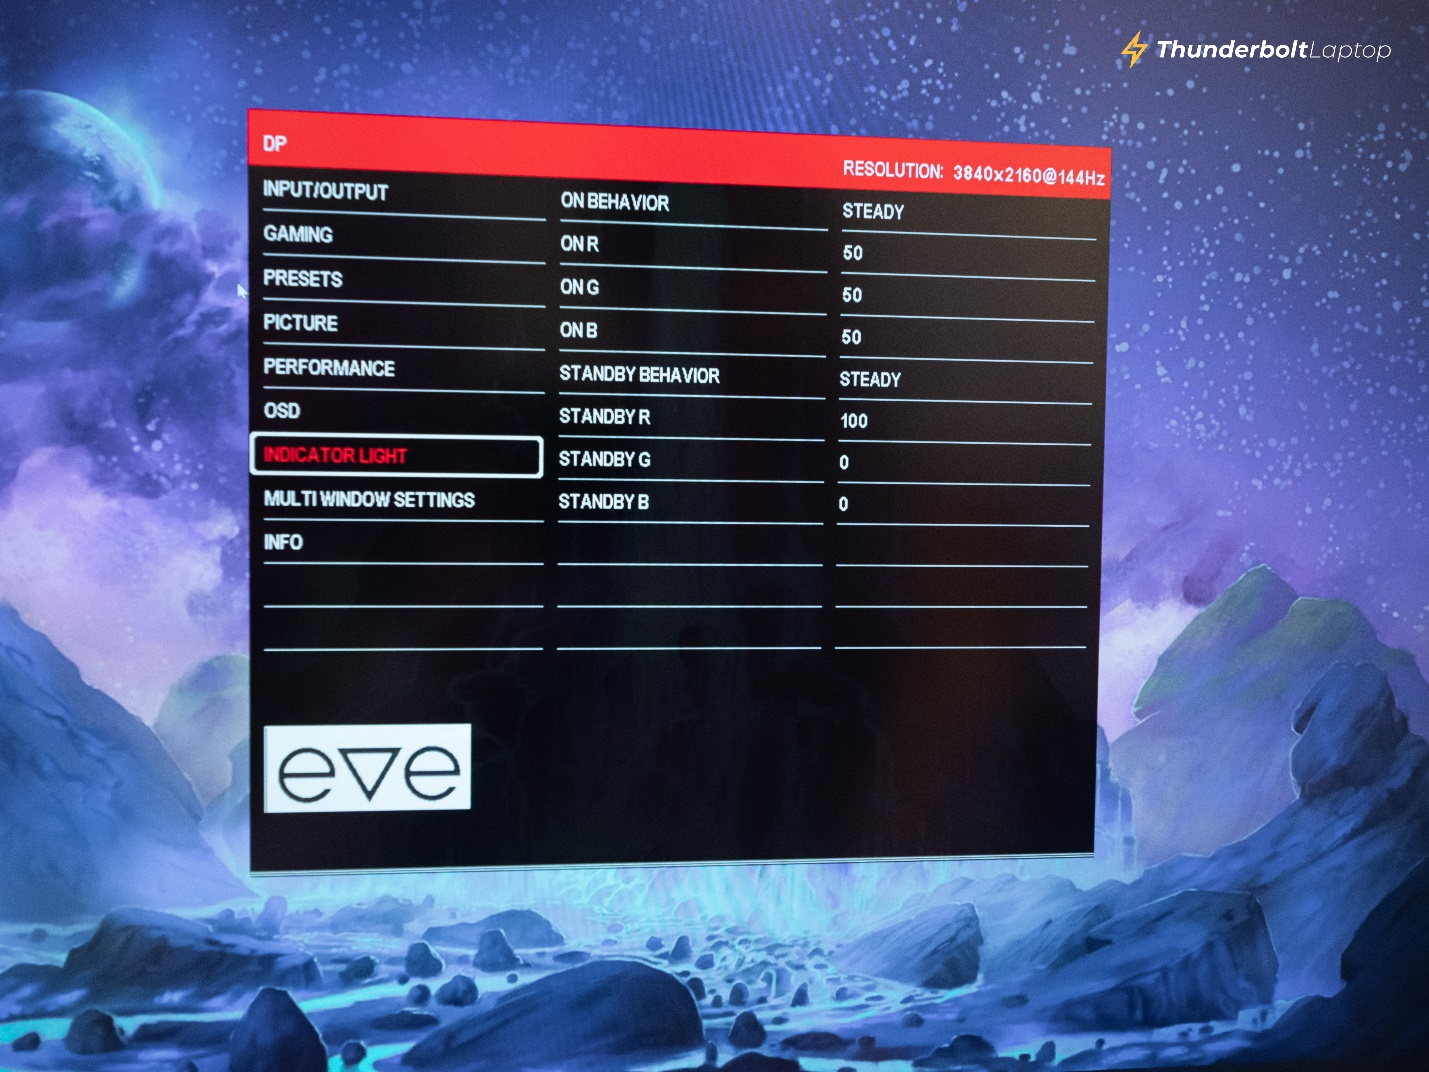 Eve Spectrum 4K 144Hz Gaming Monitor – Review and First Look